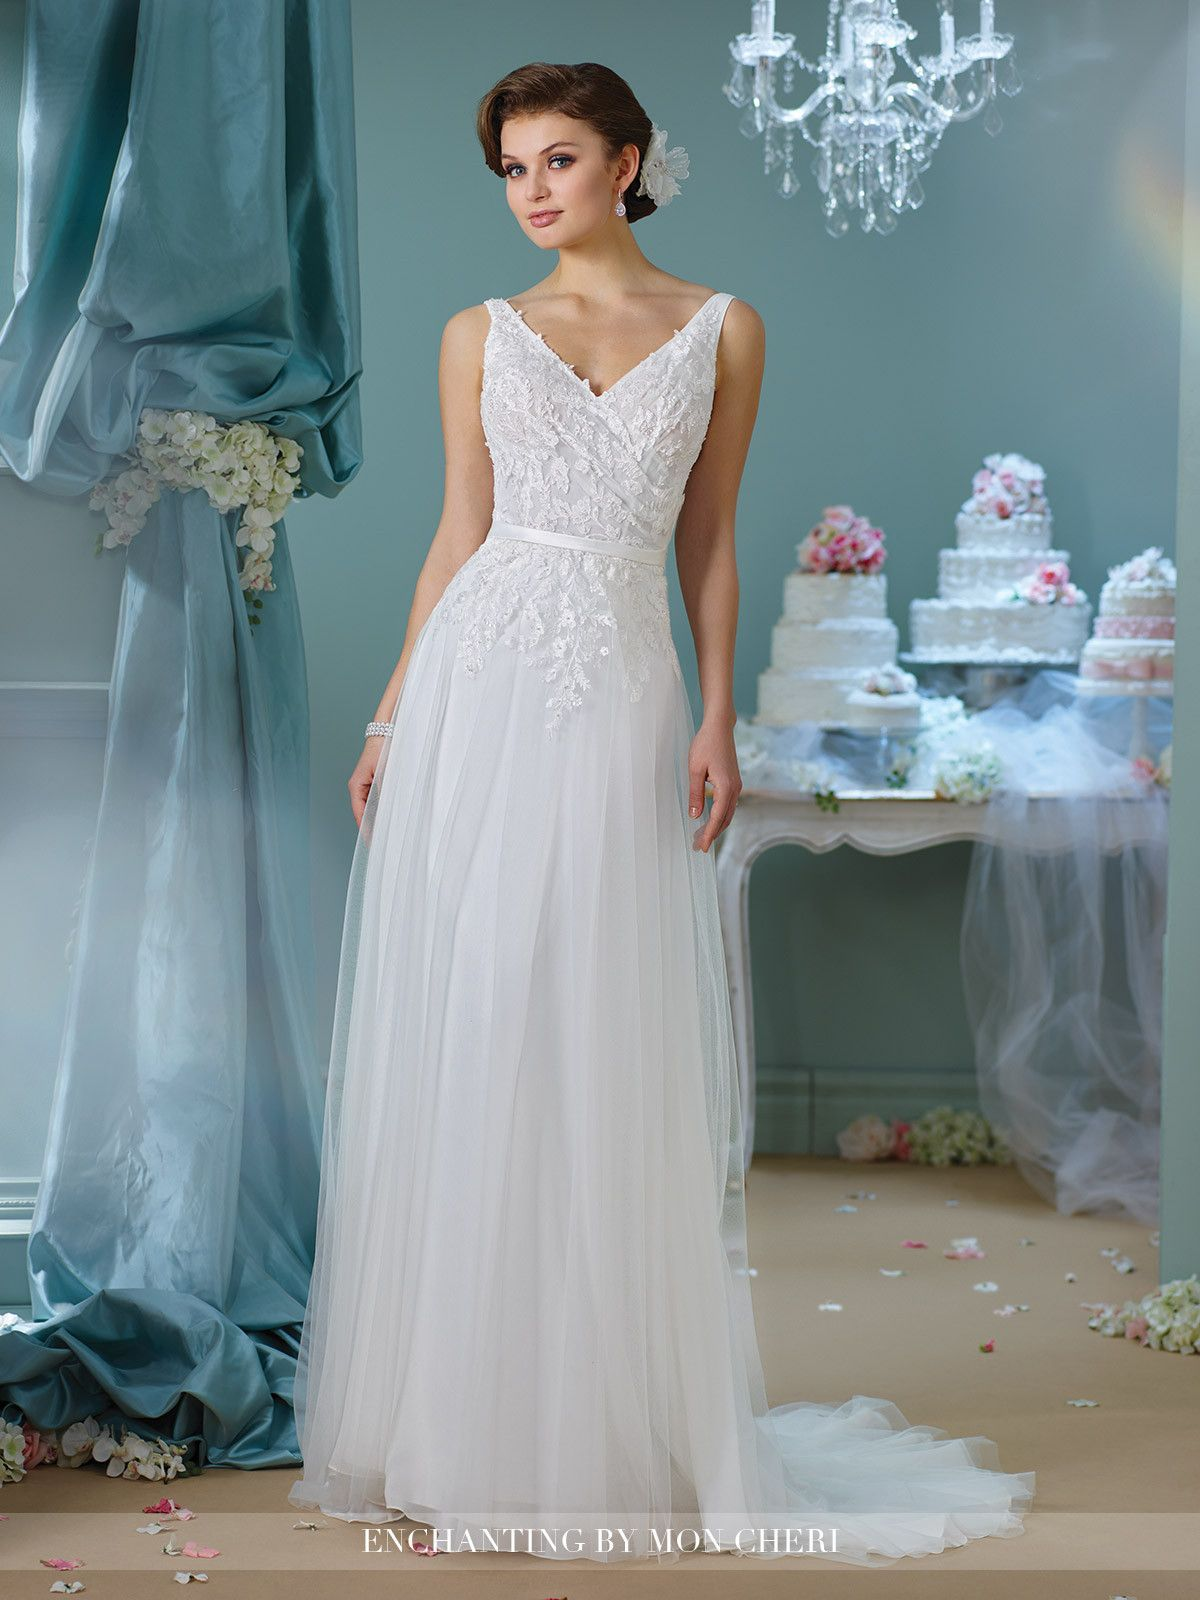 Enchanting - 216164 - All Dressed Up, Bridal Gown | Bridal gowns ...